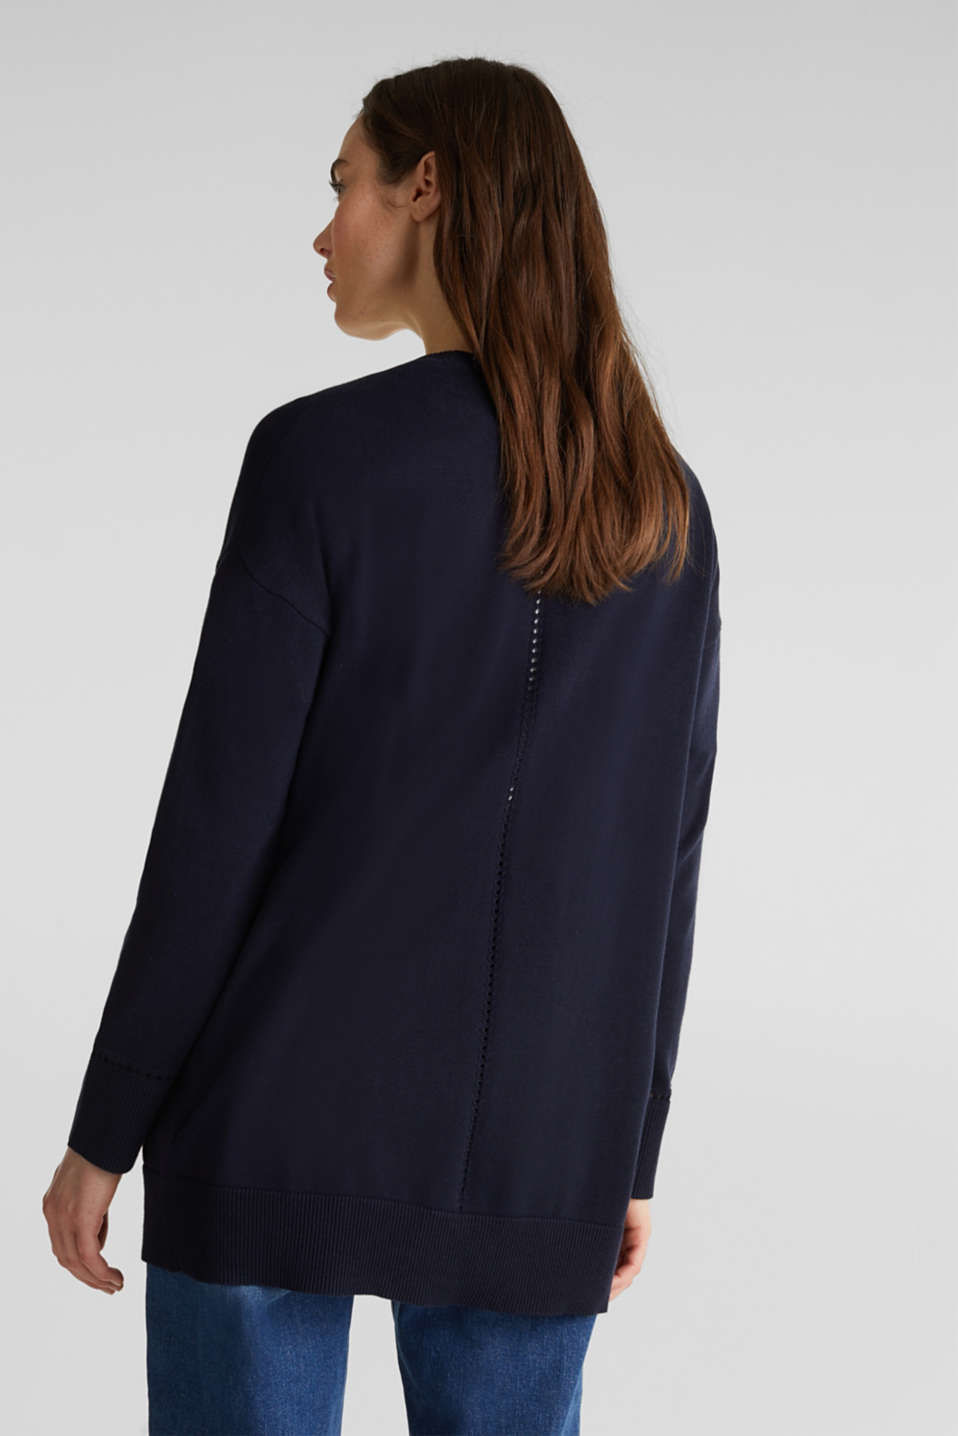 Cardigan with open-work pattern details, NAVY, detail image number 3